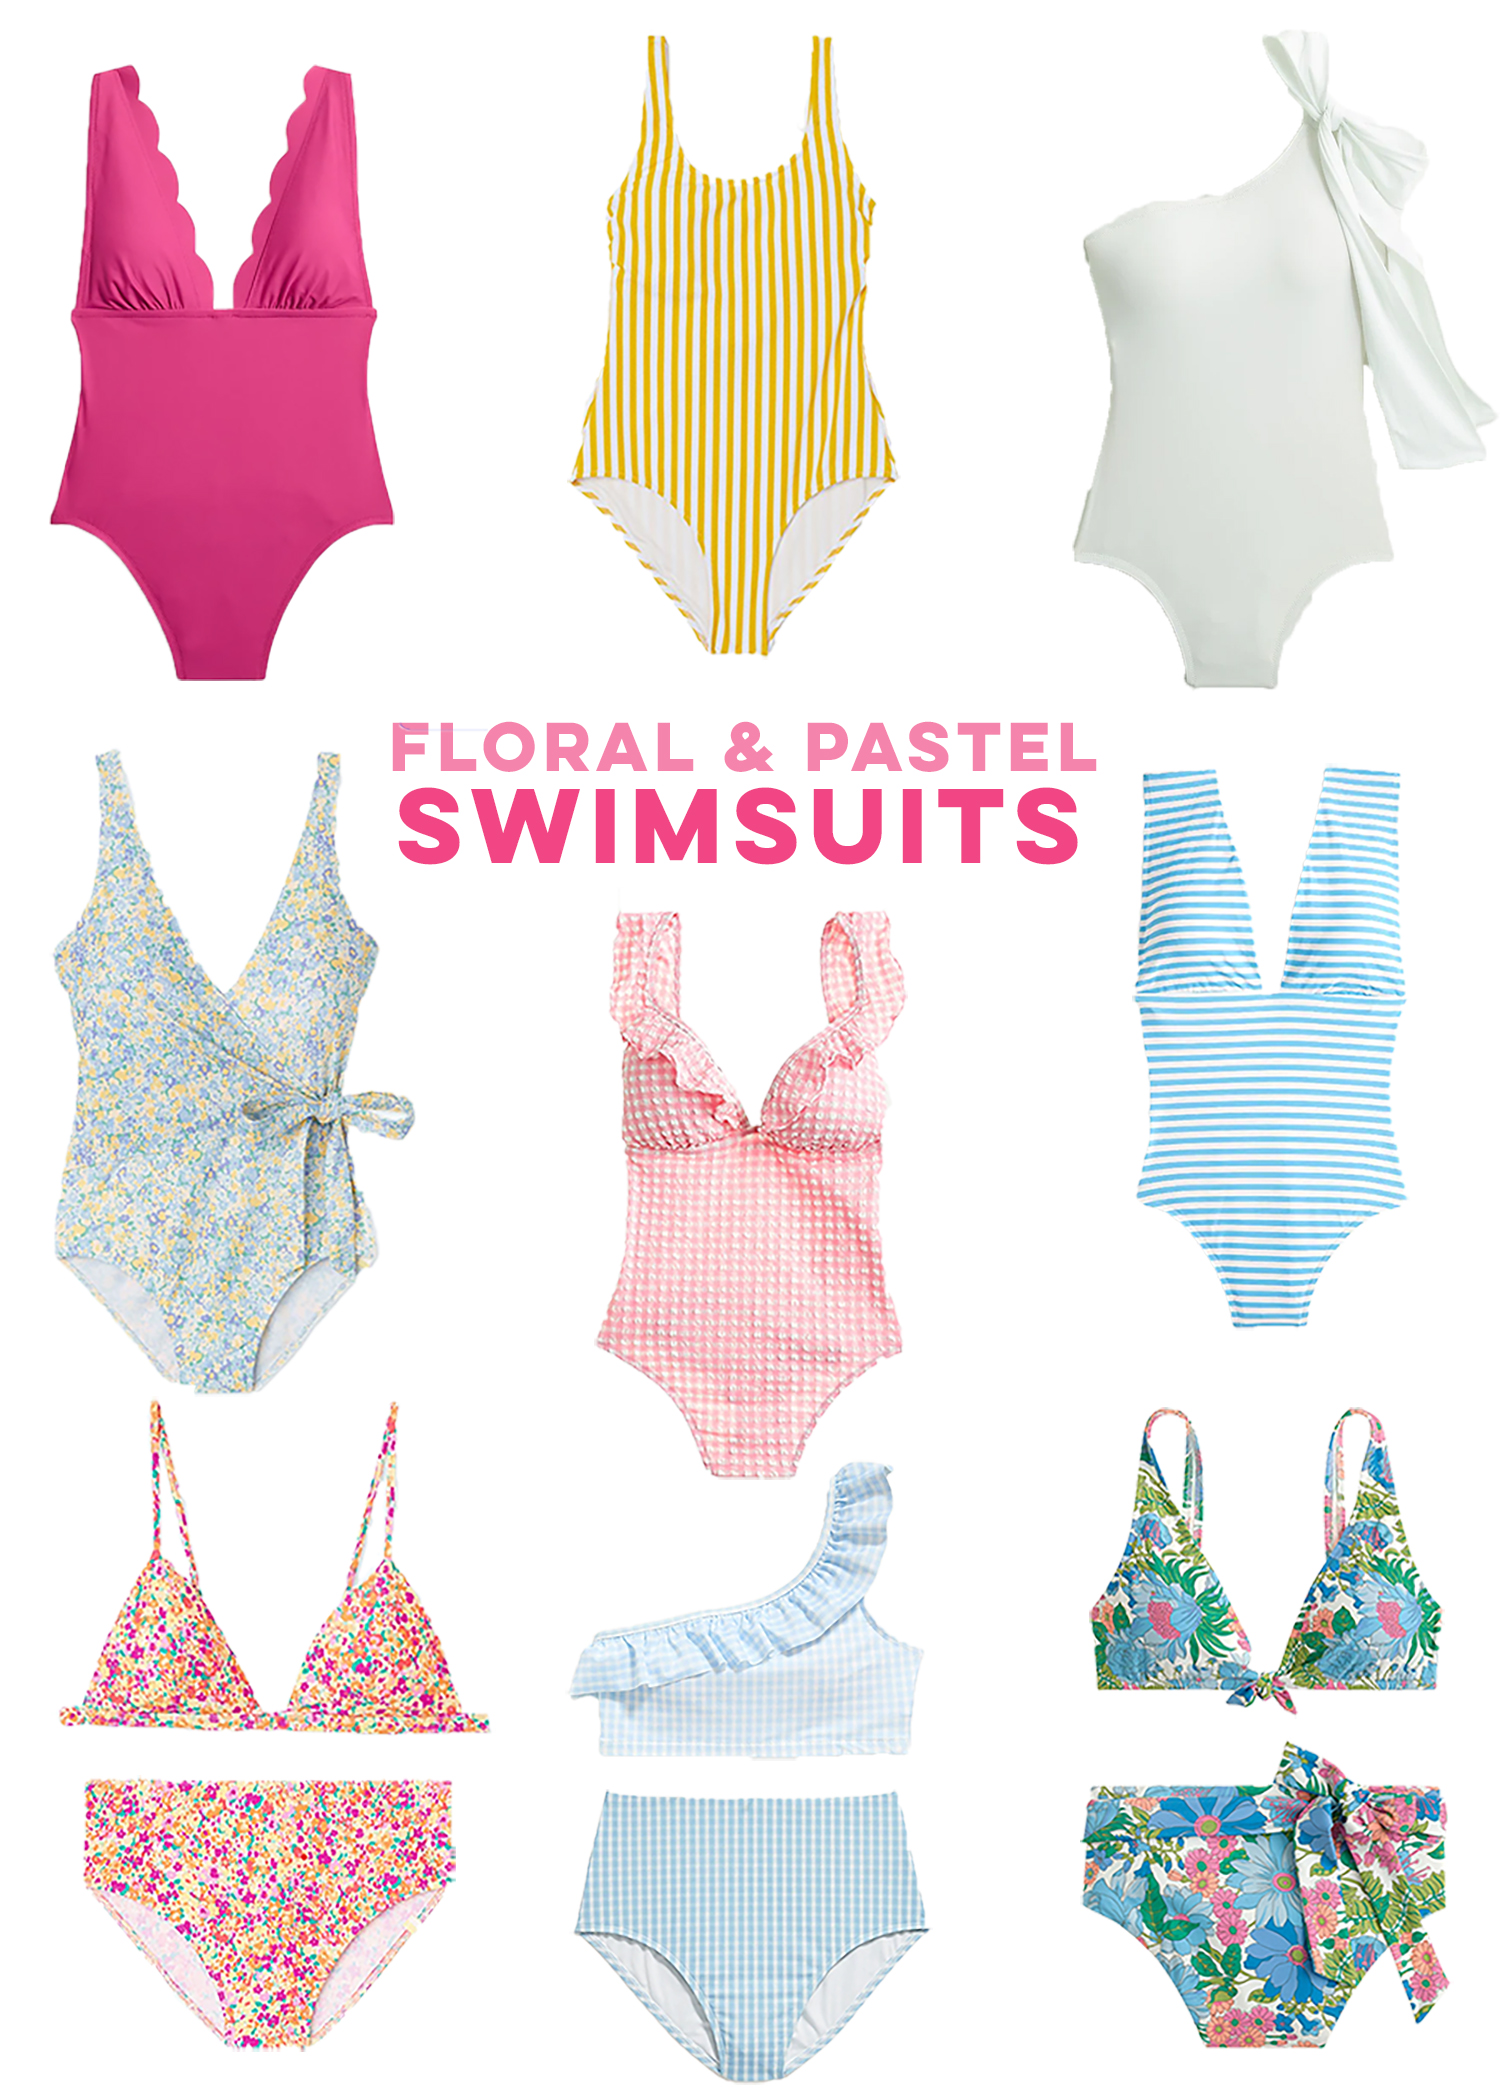 collage of floral and pastel swimsuits